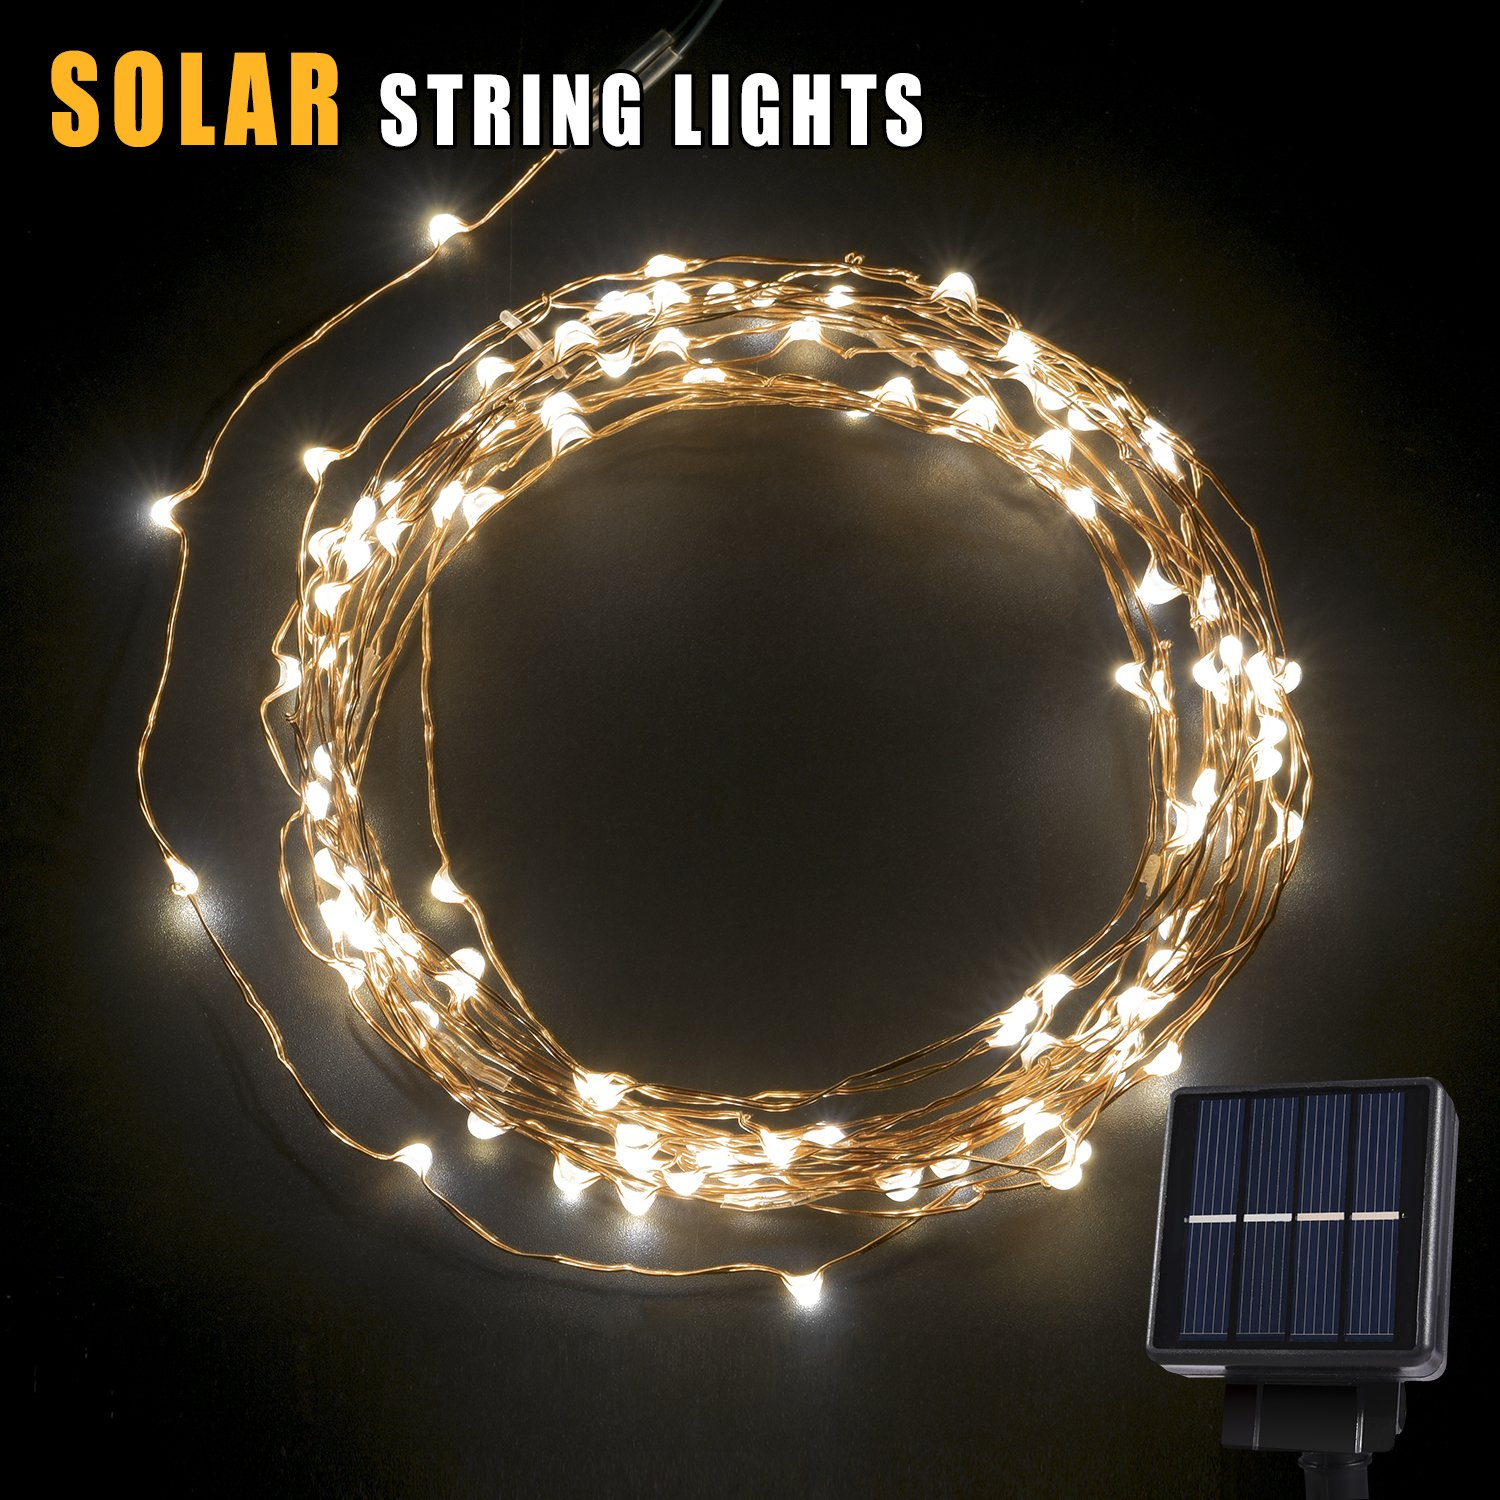 Solar Porch String Lights : Solar LED String Light 120 LEDs Outdoor Solar Powered LED String Lights Water... eBay